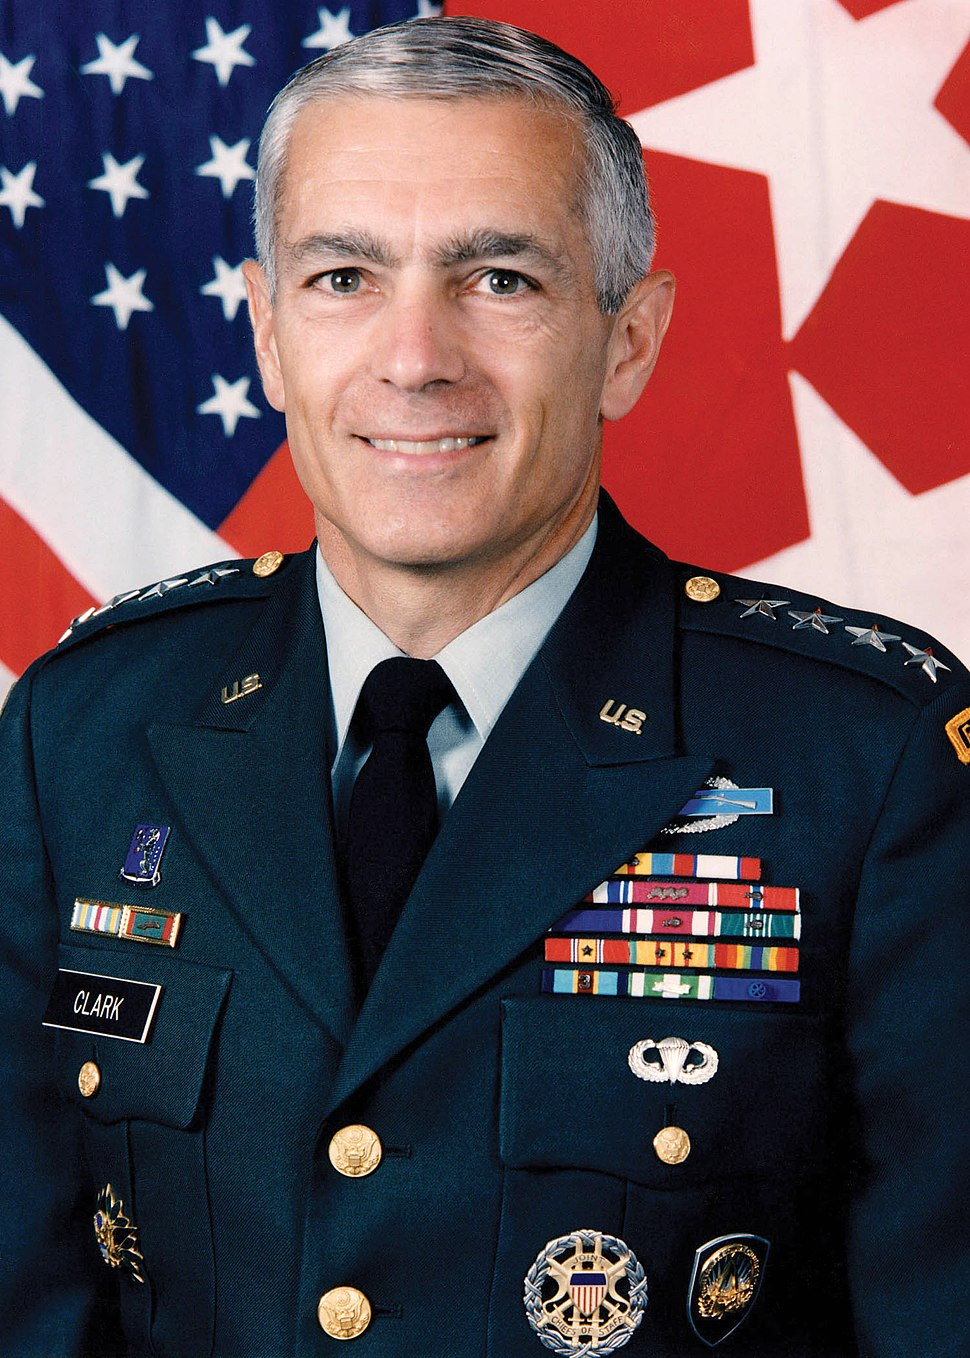 General Wesley Clark official photograph, edited